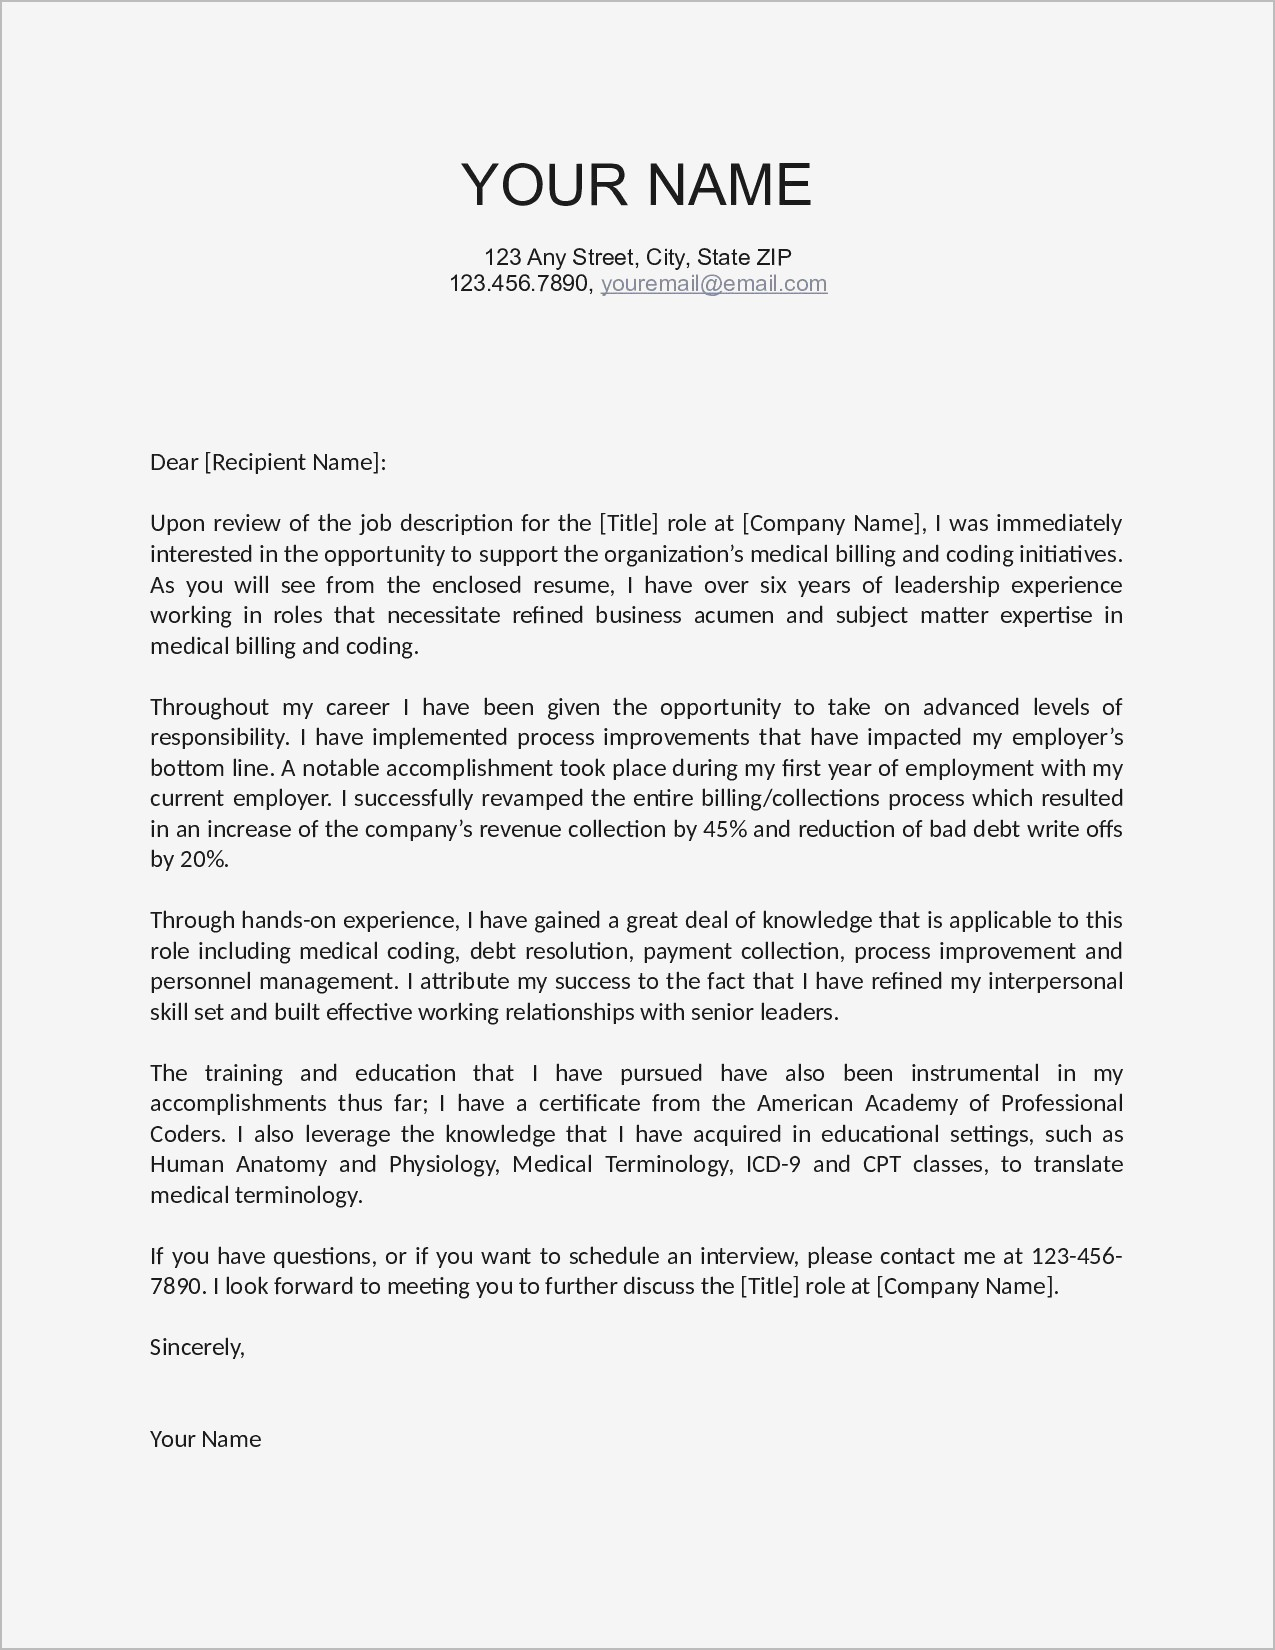 Cover Letter Template for Retail Job - Cover Letter for Employment Pdf format